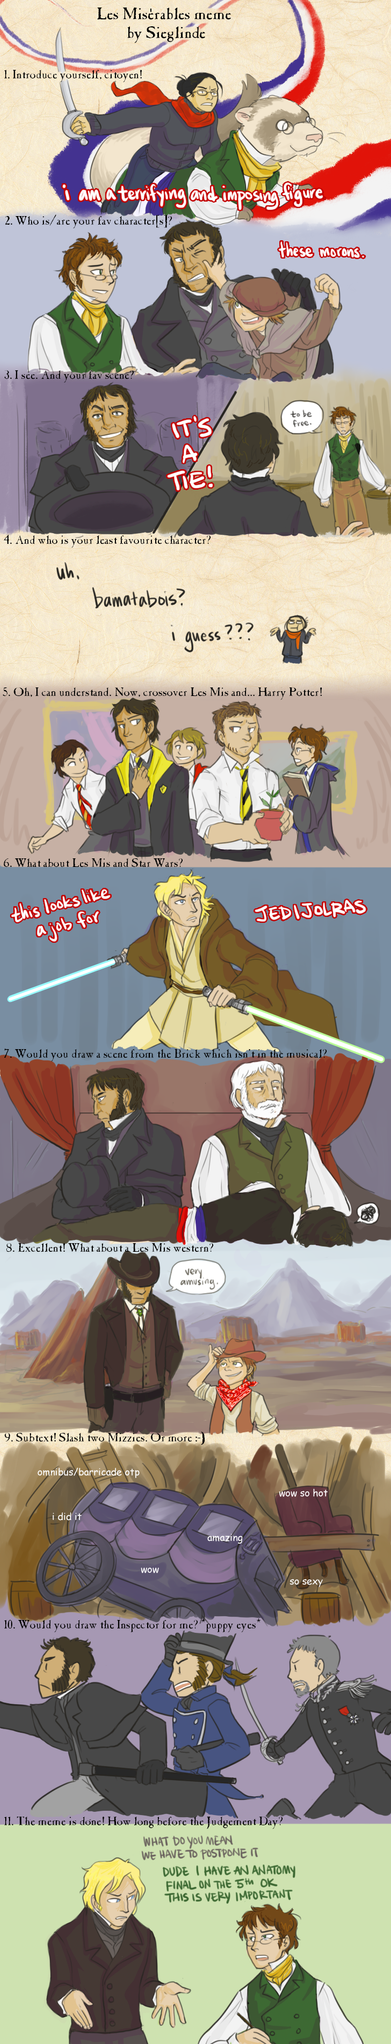 les mis meme ROUND TWO by simply-irenic